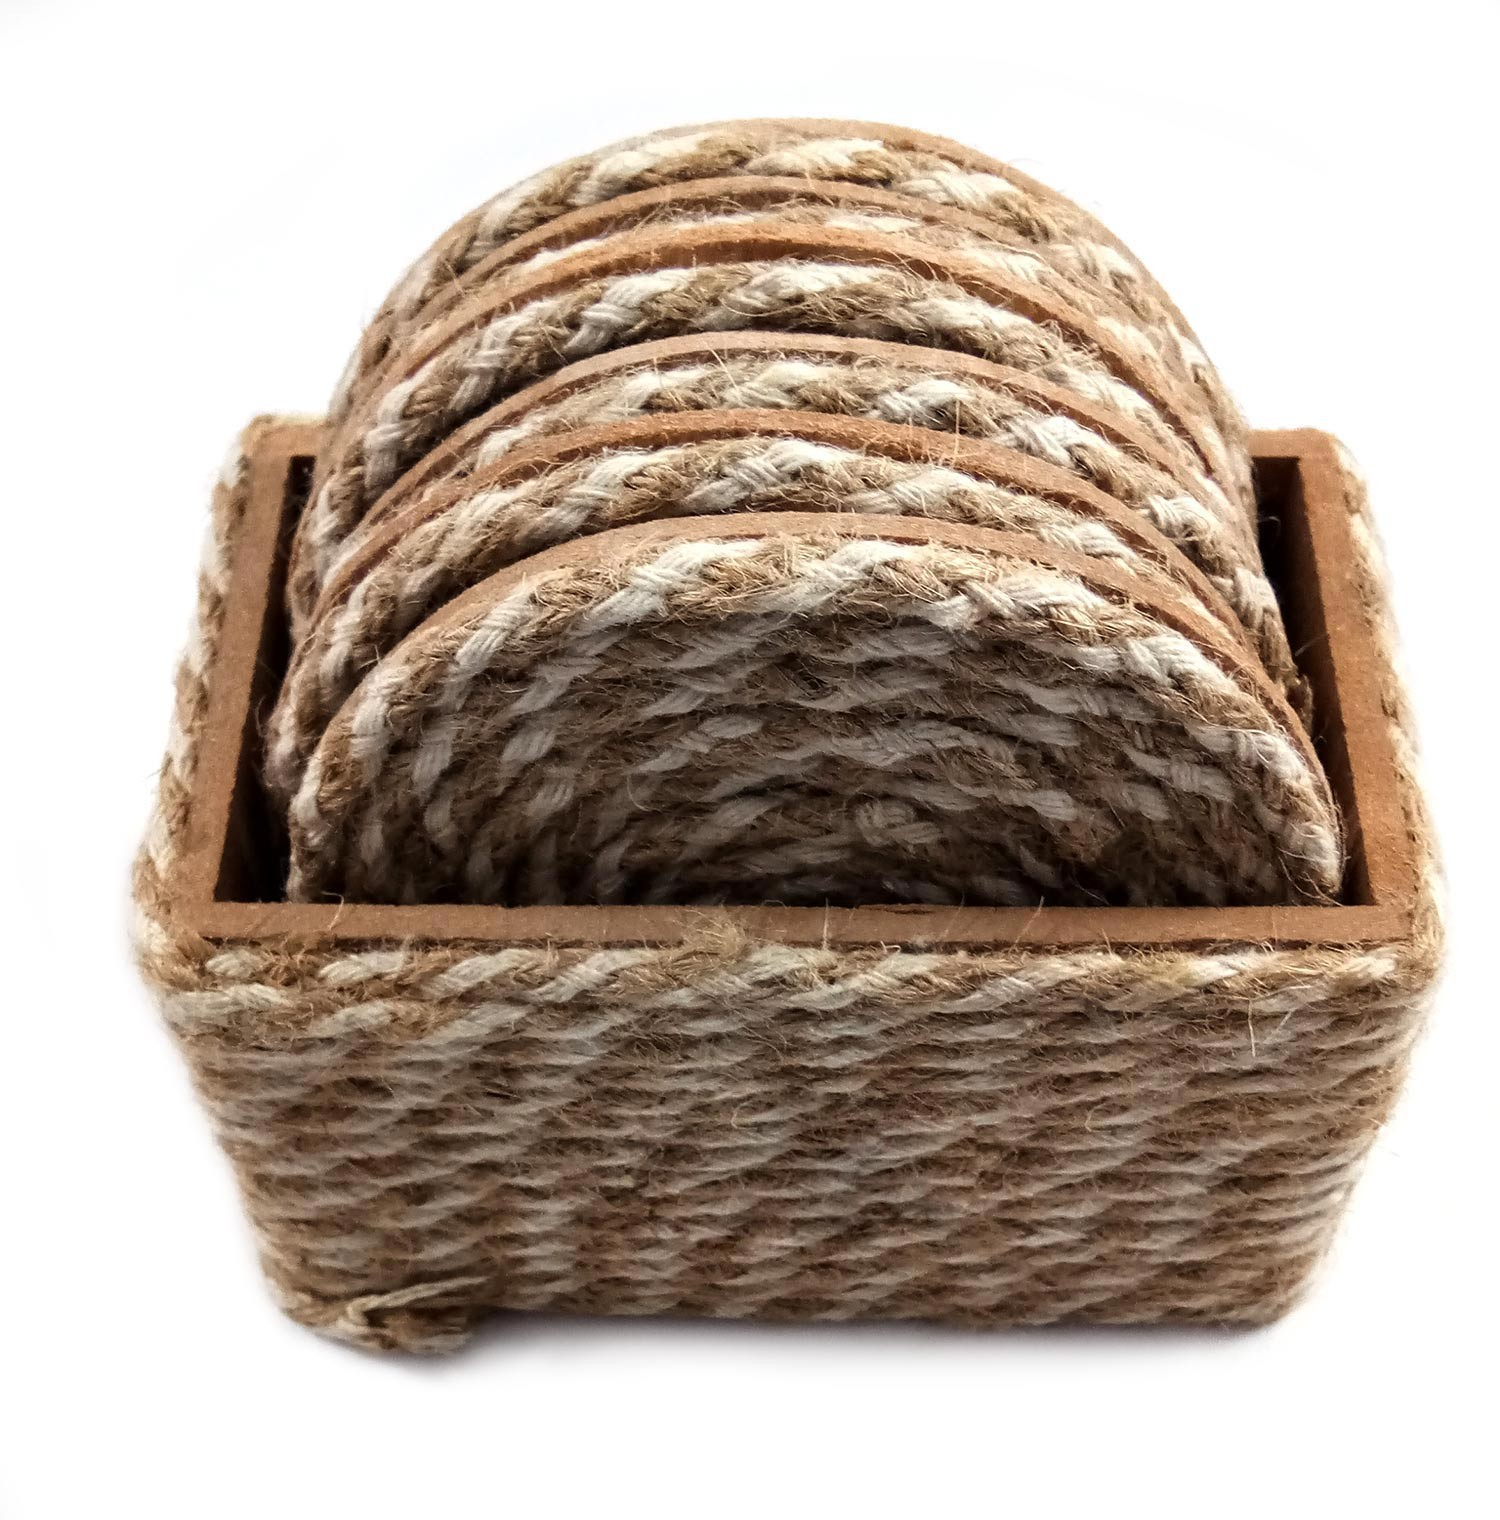 Brown Jute Rope Coaster Set of 6 by person with disability